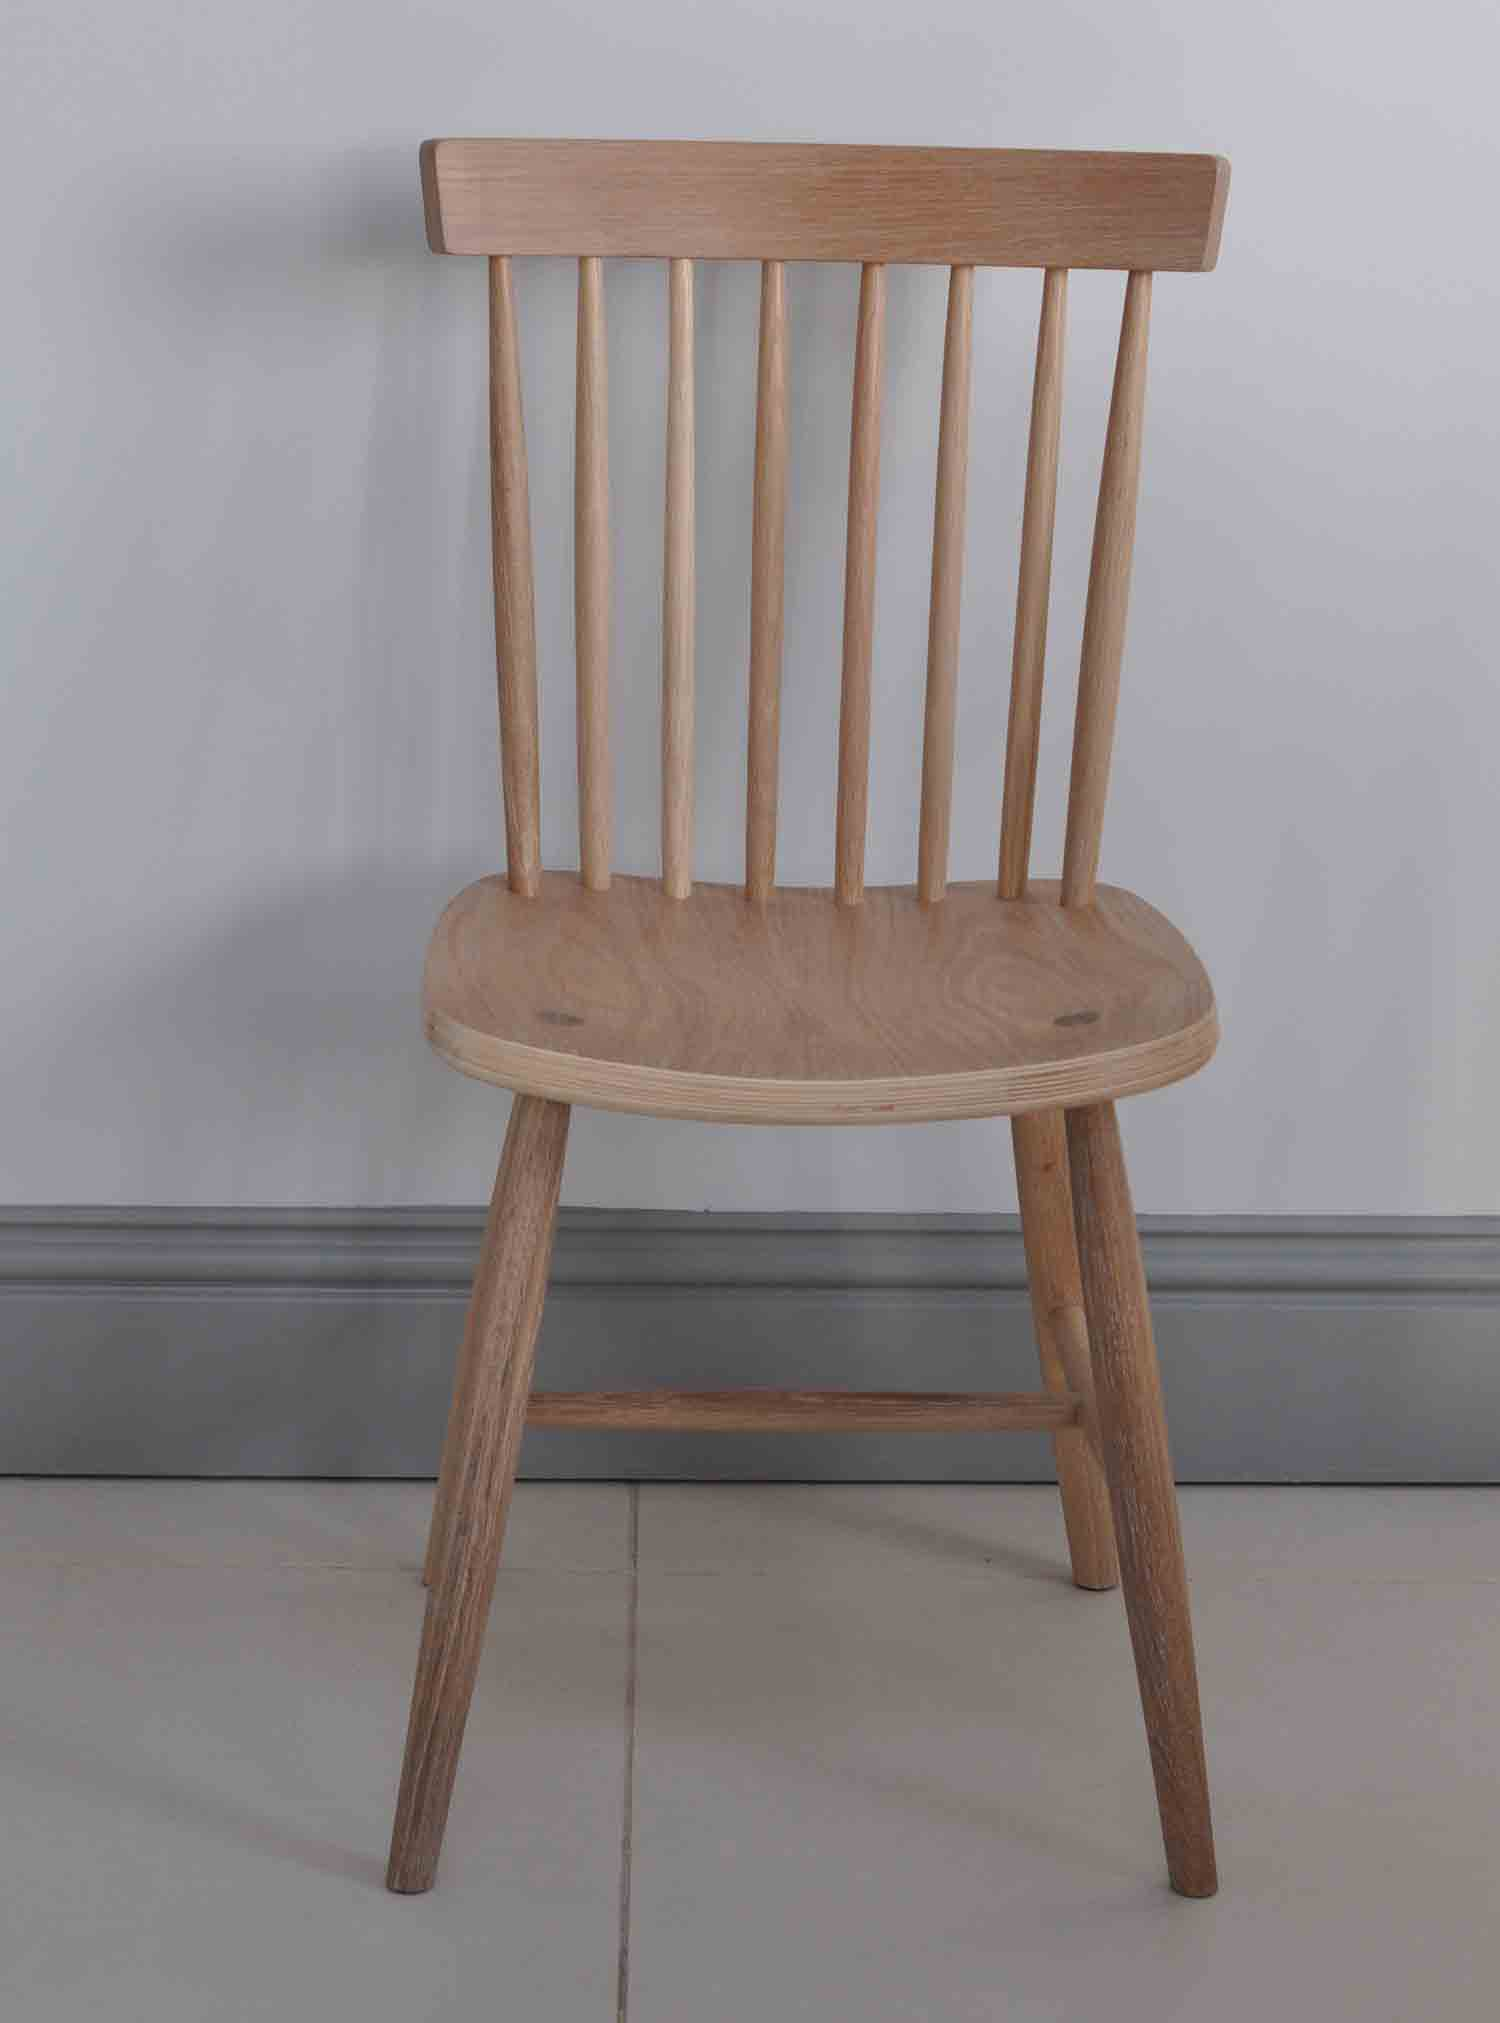 oak and white dining chairs adirondack chair template pdf oxford spindle back painted or